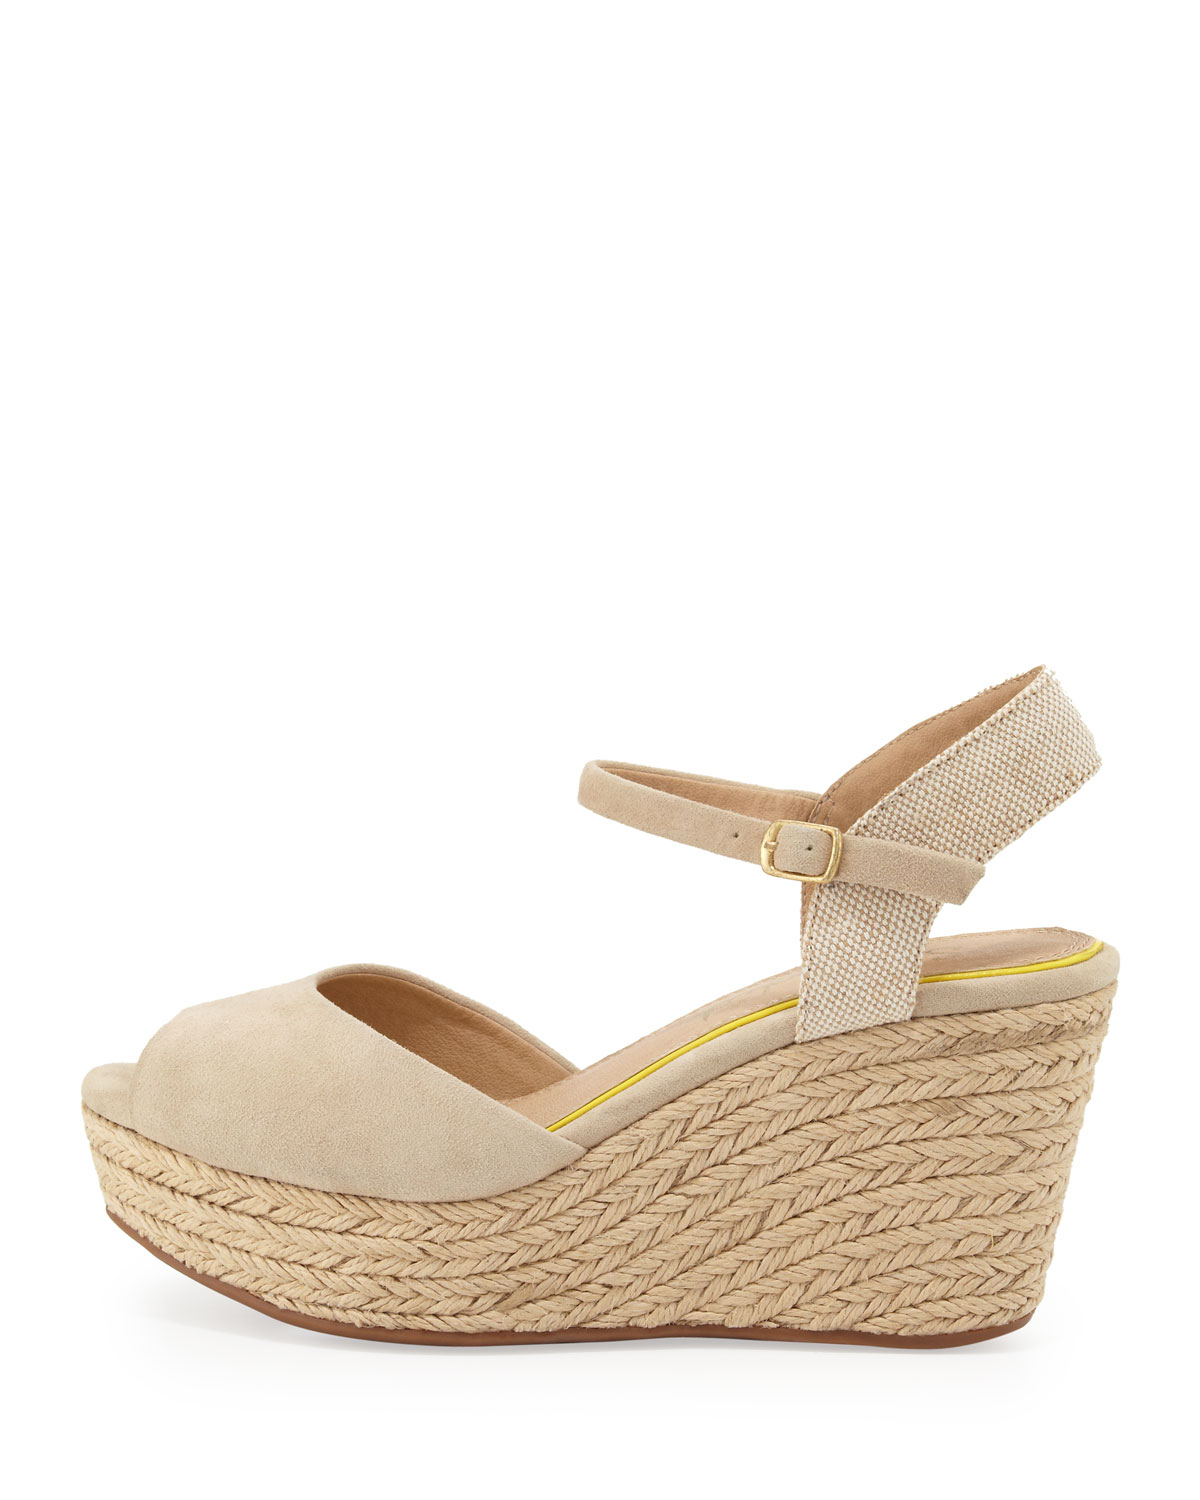 Splendid Ganes Suede Wedges clearance best place pay with paypal sale online cheap sale big discount tlsmupBY